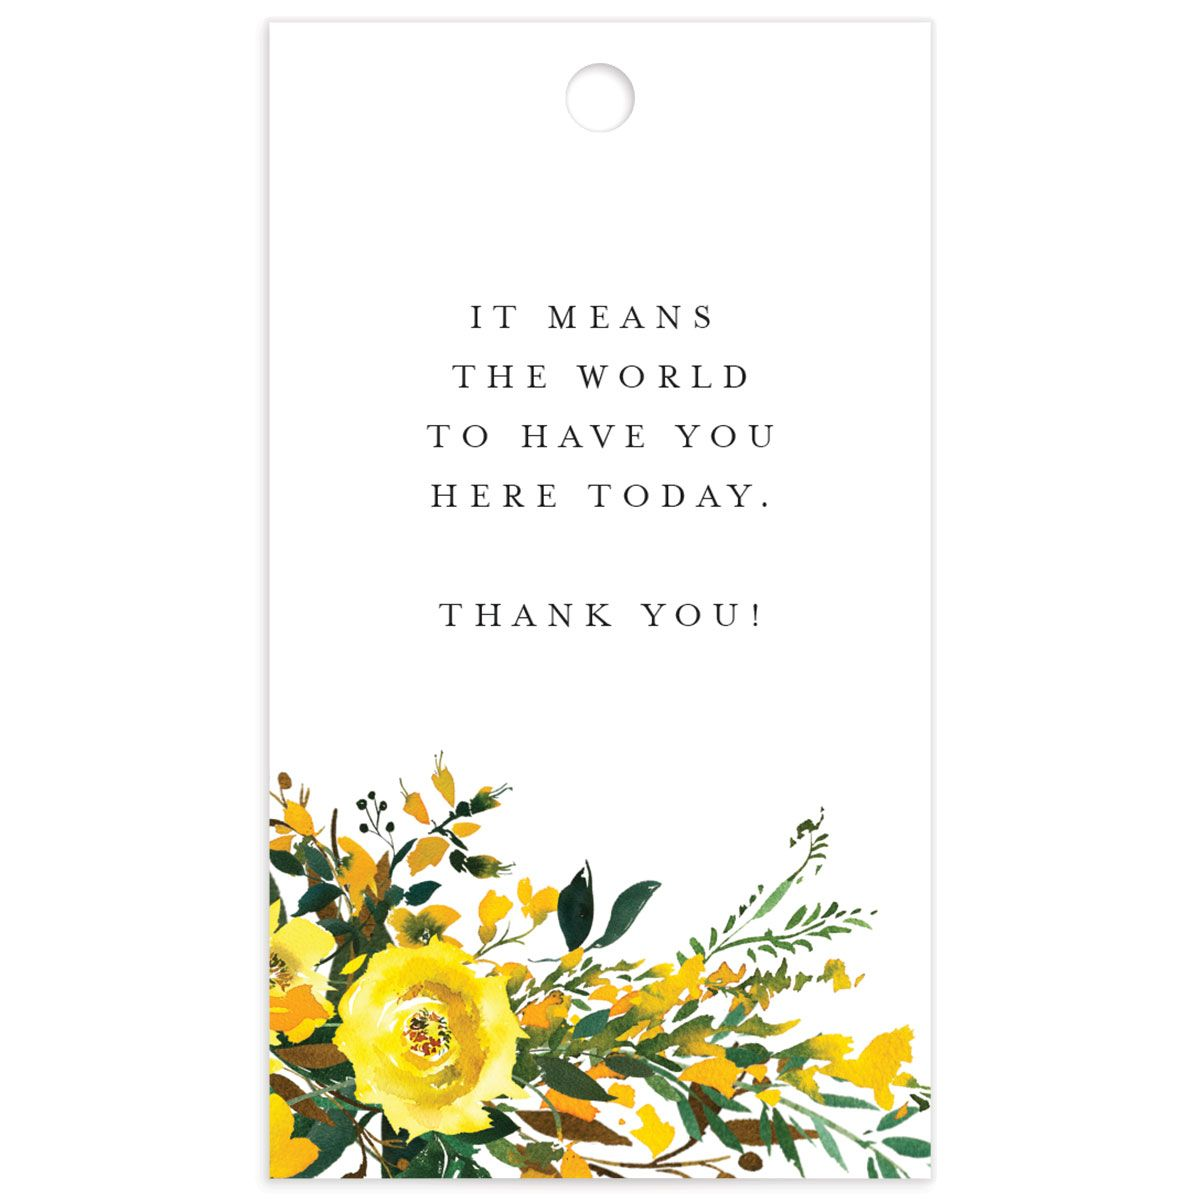 Cascading Altar wedding gift tags in yellow front